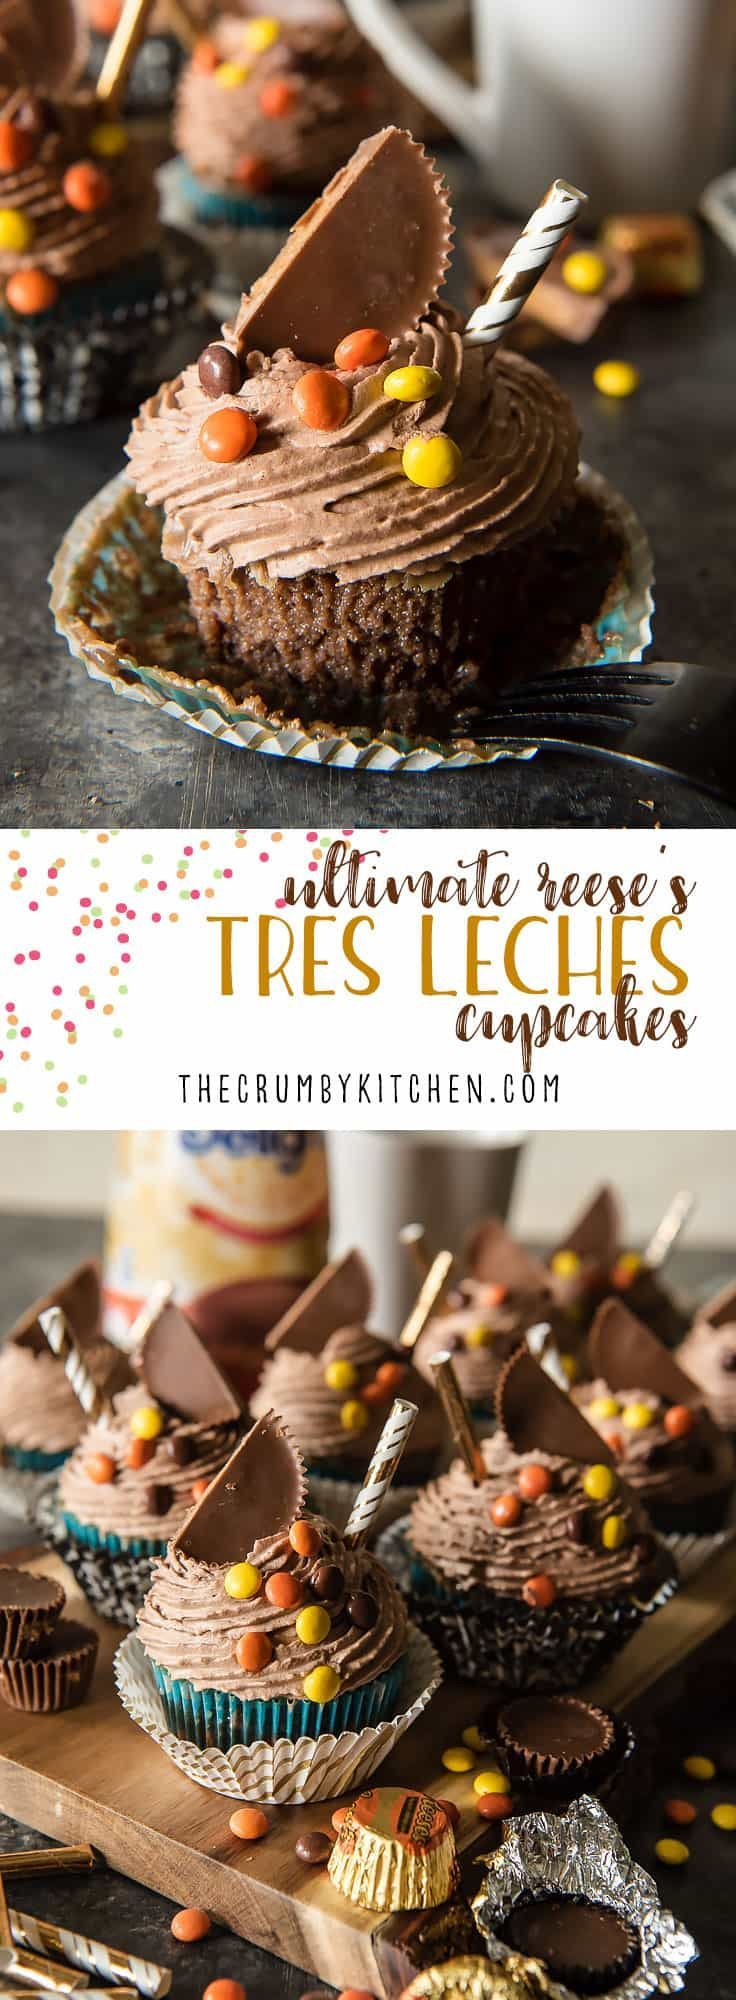 These super-moist, delicious Ultimate REESE'S Tres Leches Cupcakestake classic tres leches cake, shrink it down, and add a fun peanut butter twist! The ganache and chocolate whipped cream truly make these treats irresistible! #chocolate #tresleches #cupcake #reeses #peanutbutter #dessert #recipe